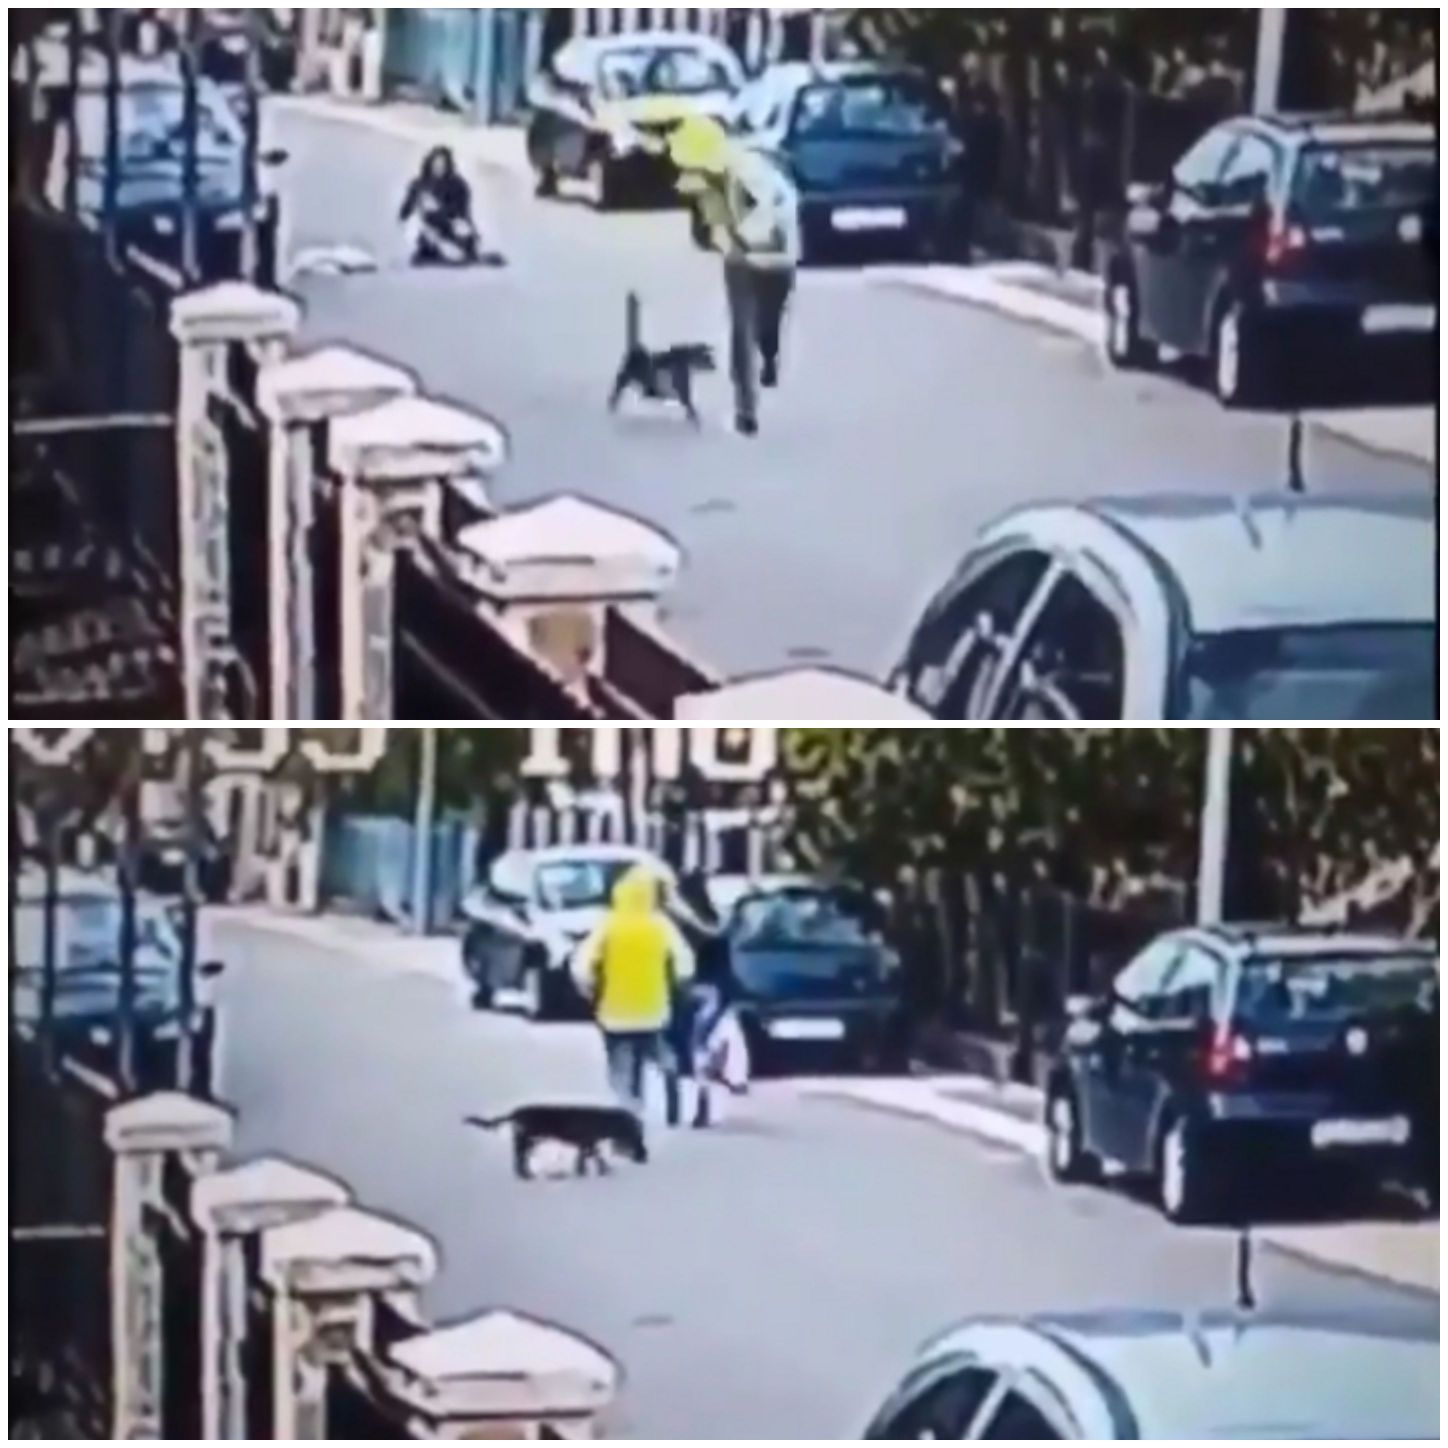 Dog in street situation but heroic saves a woman from an assailant